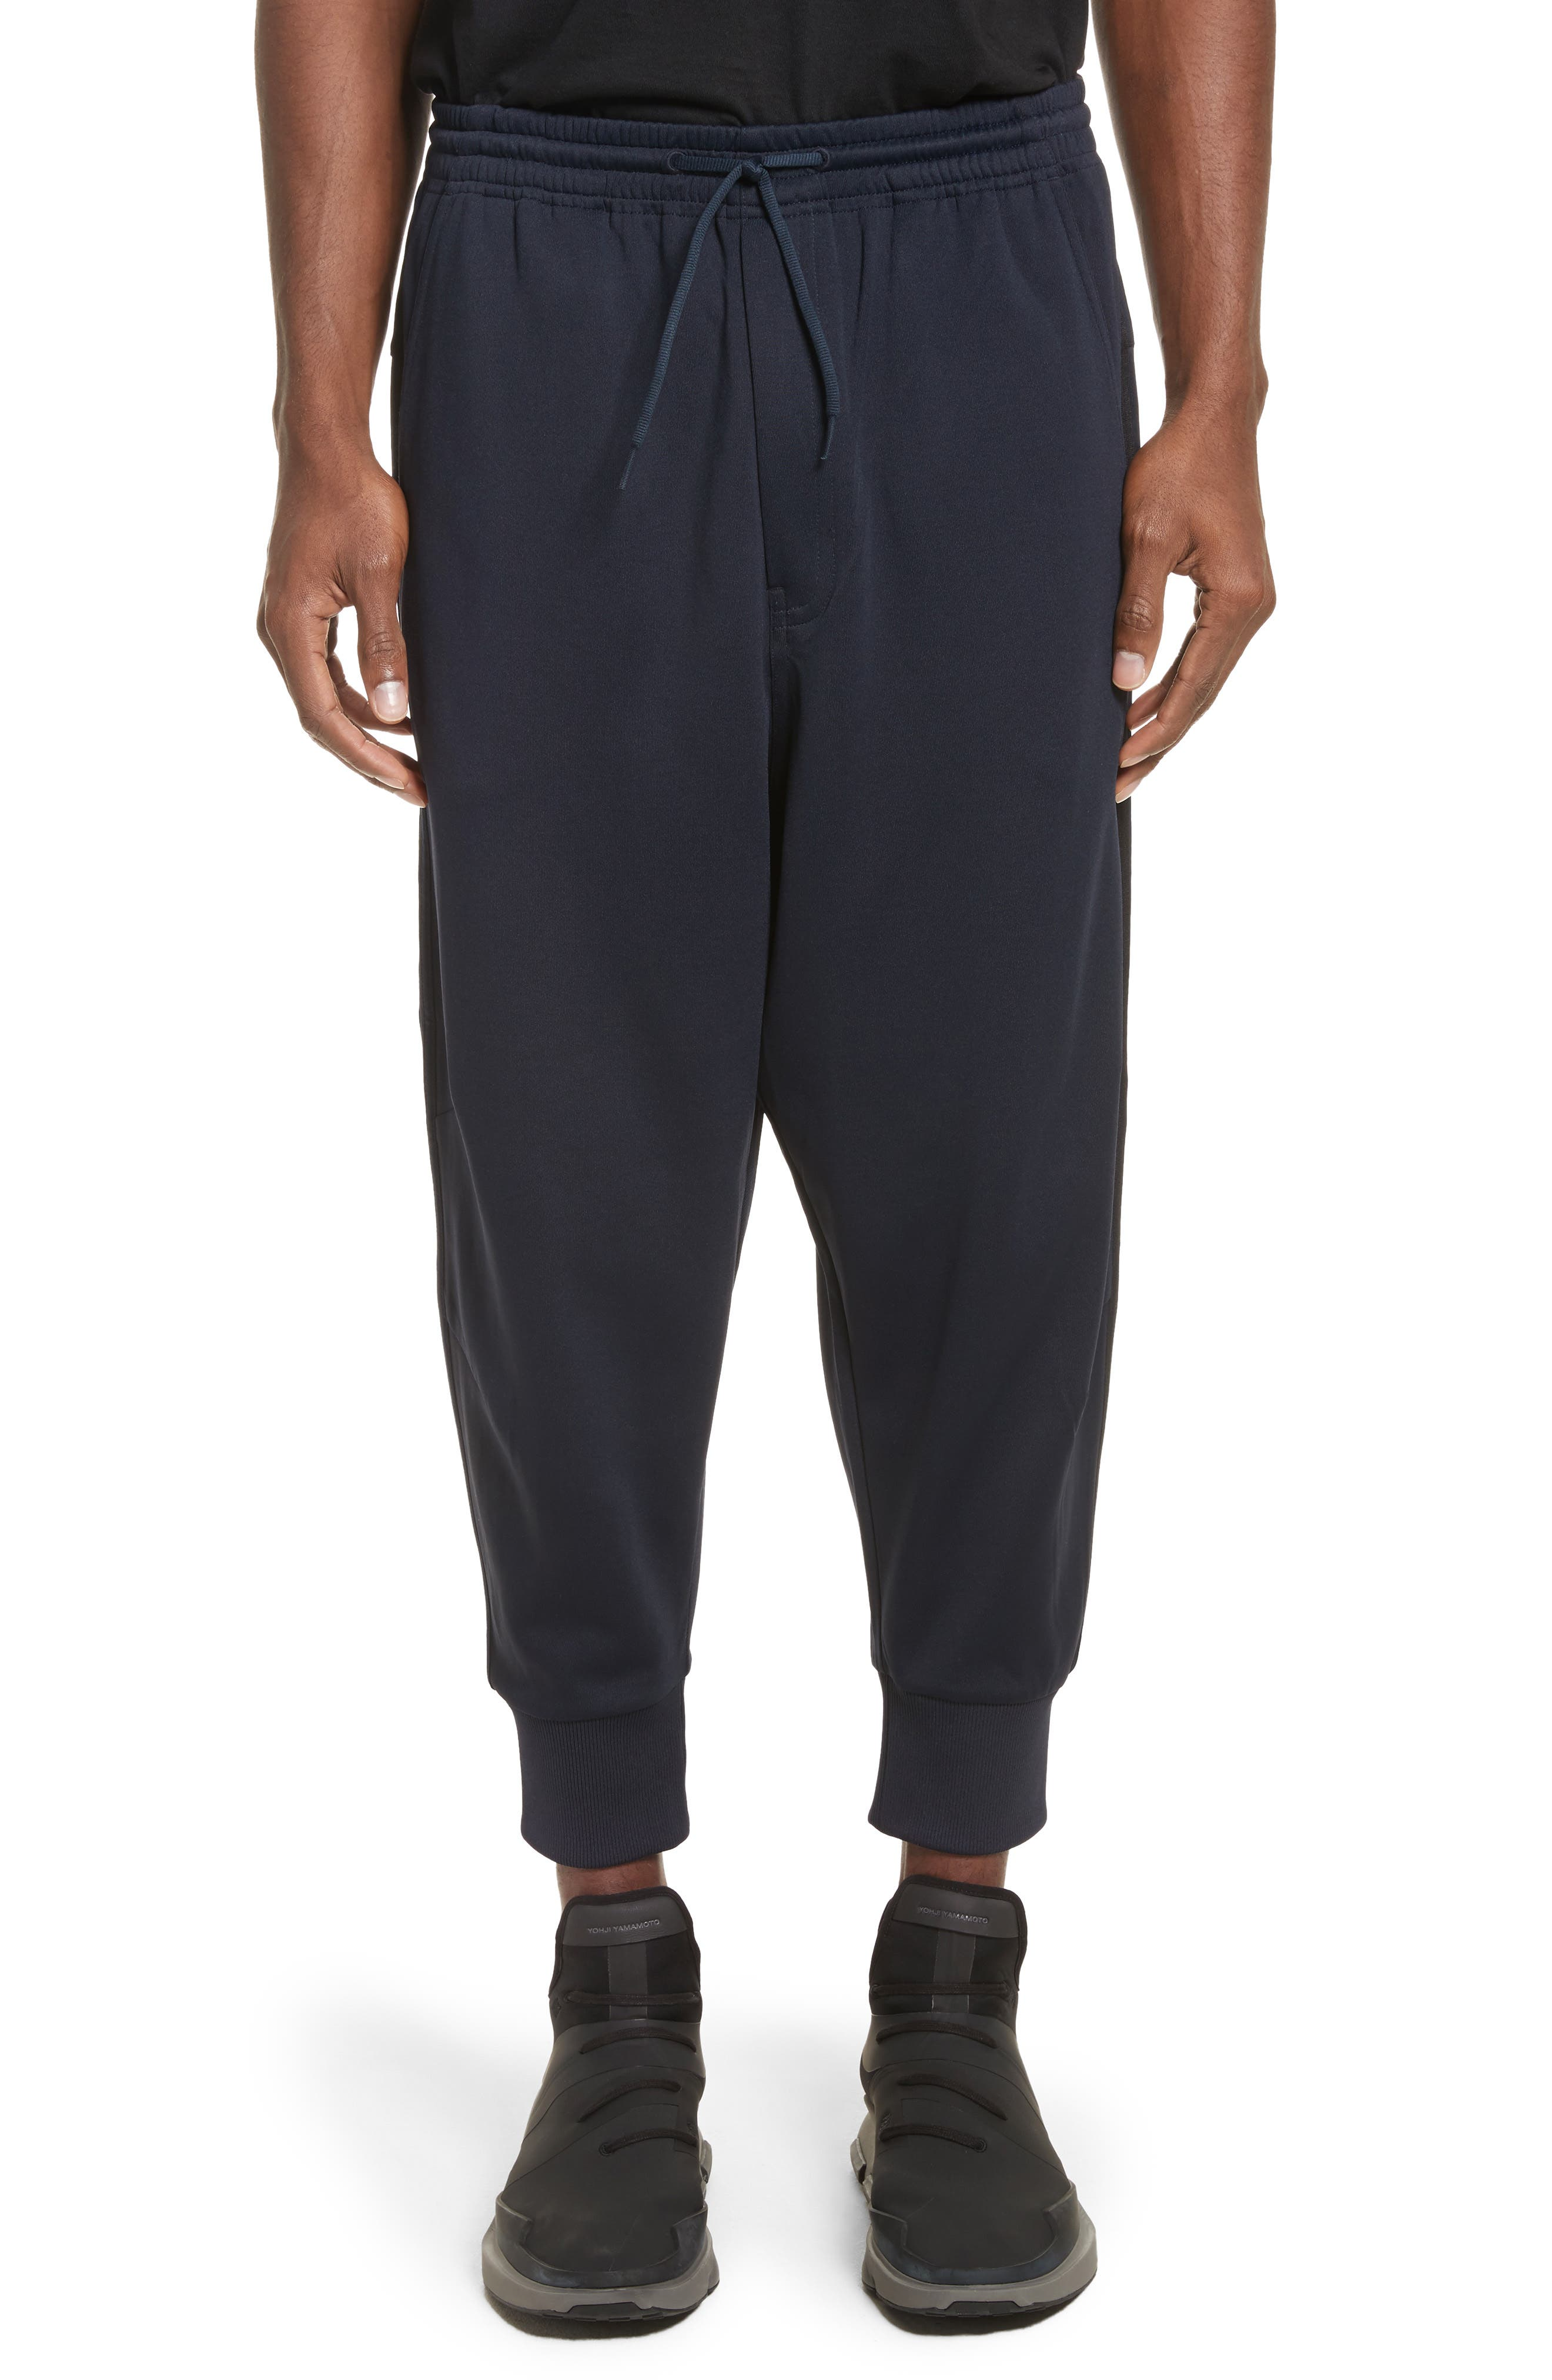 x adidas Cropped Track Pants,                         Main,                         color, Navy